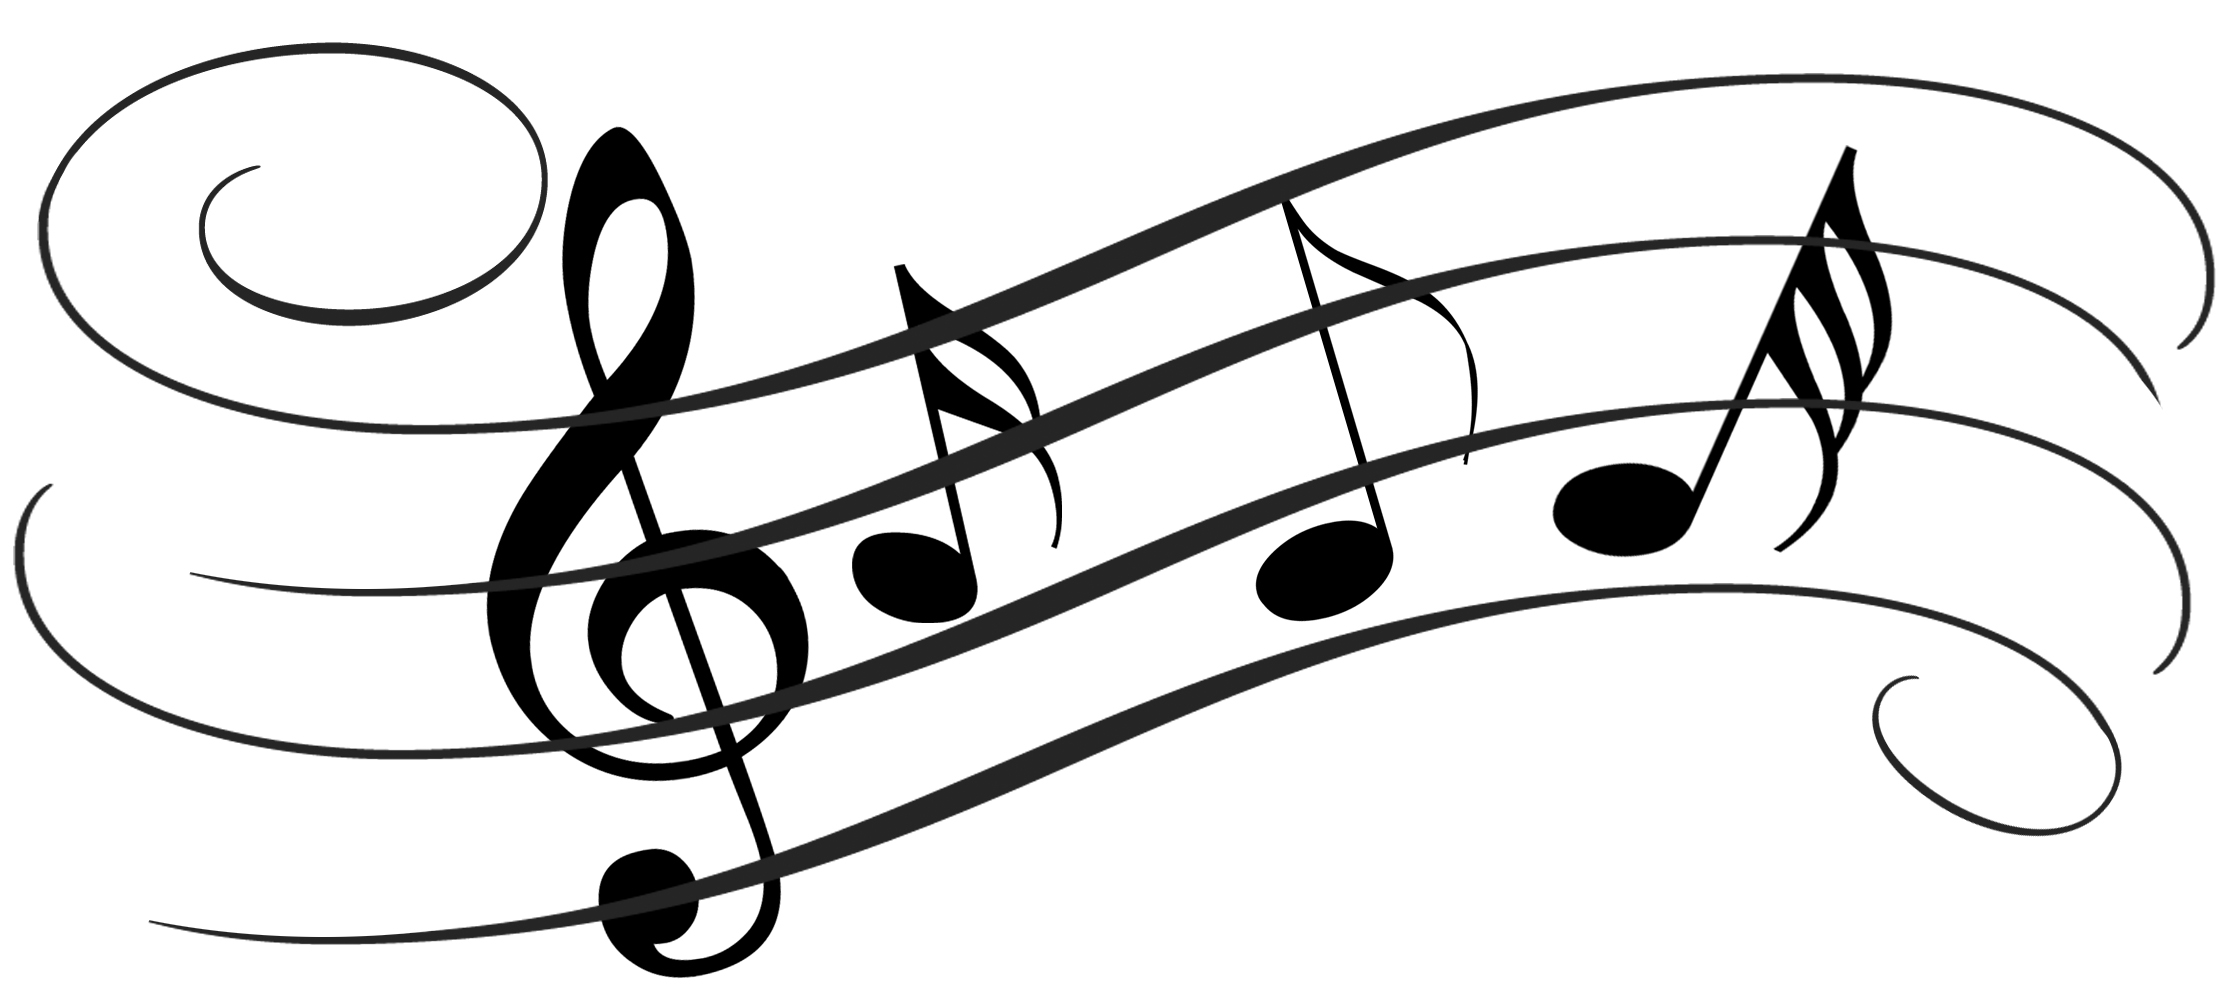 Drawings Of Music Notes | Free Download Clip Art | Free Clip Art ...